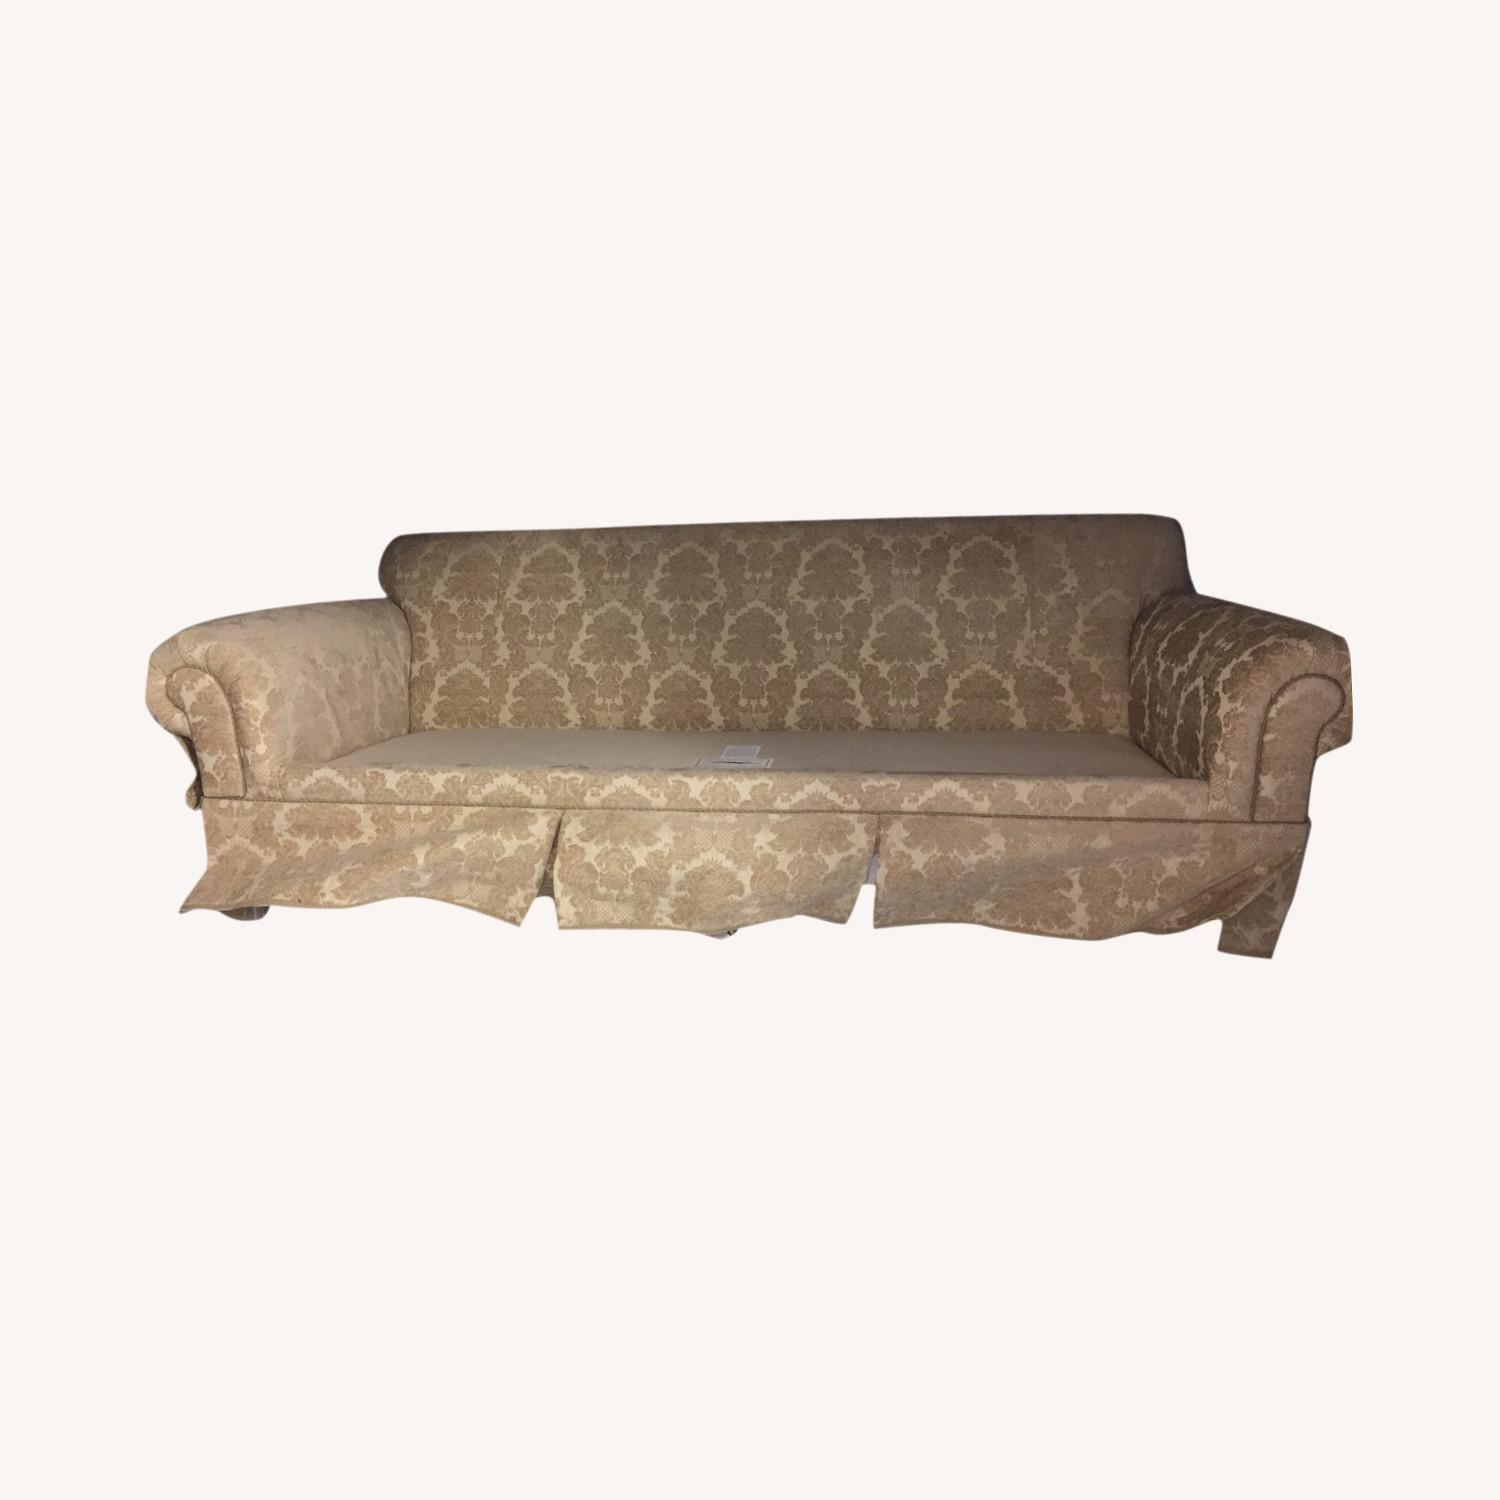 3 Seater Couch - image-0